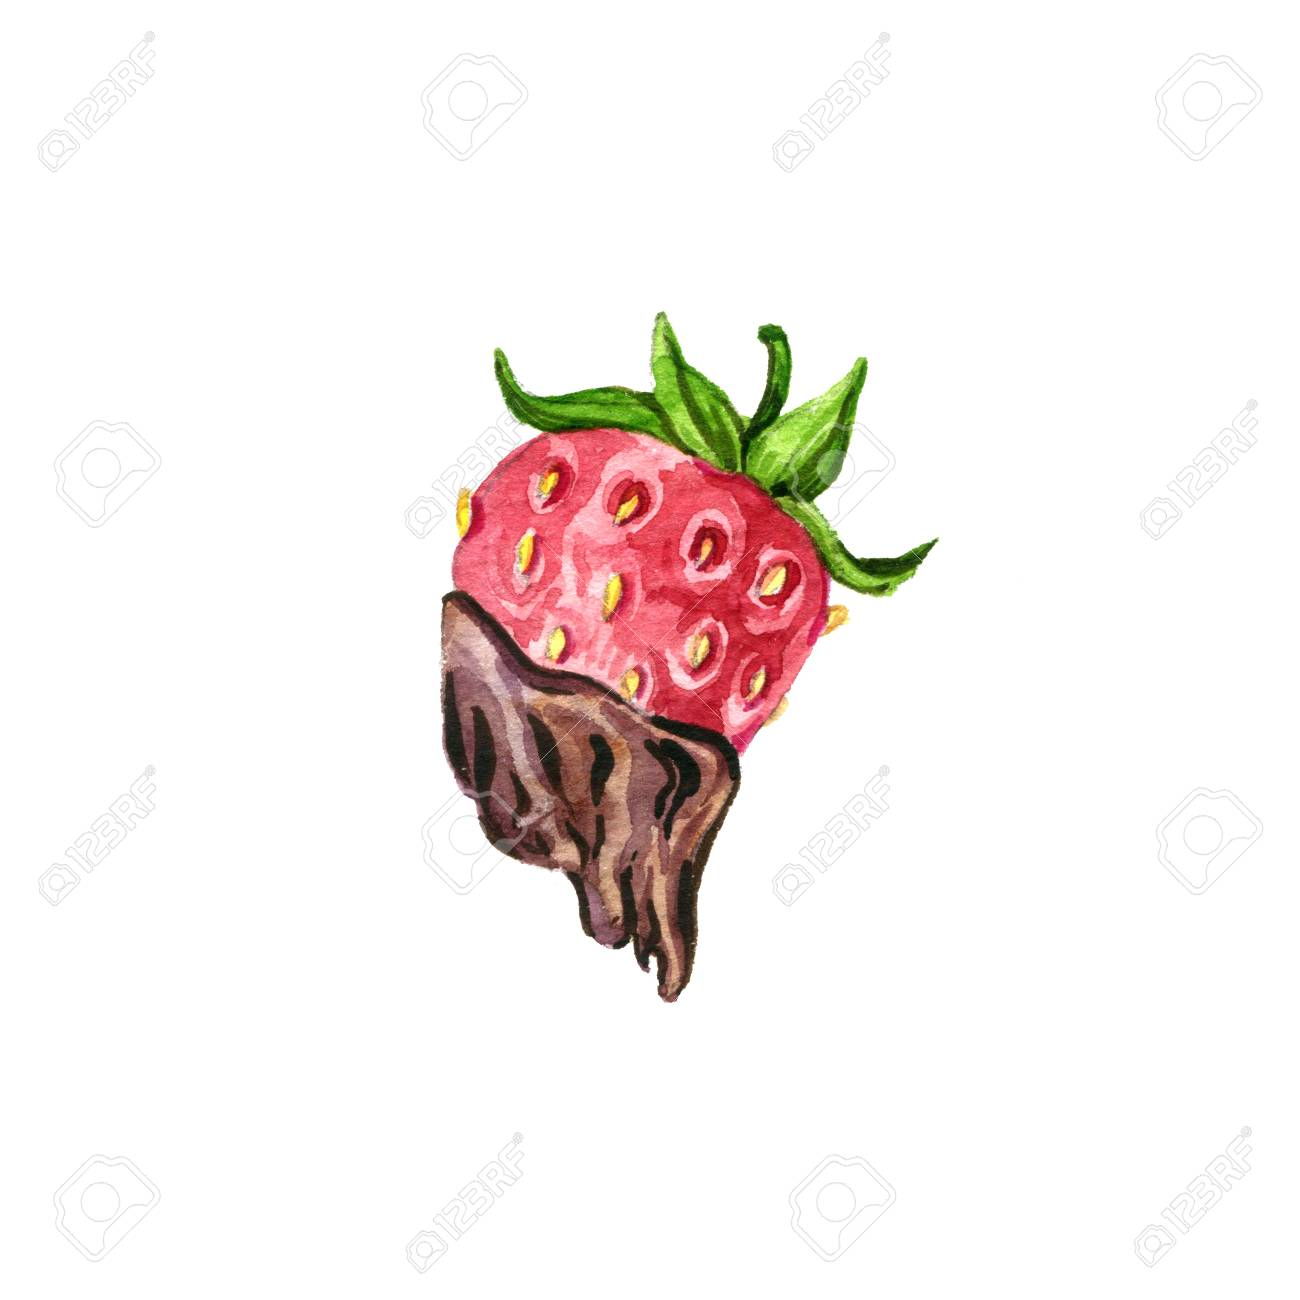 Strawberry With Chocolate Drawing In Watercolor Isolated At White Stock Photo Picture And Royalty Free Image Image 65755941